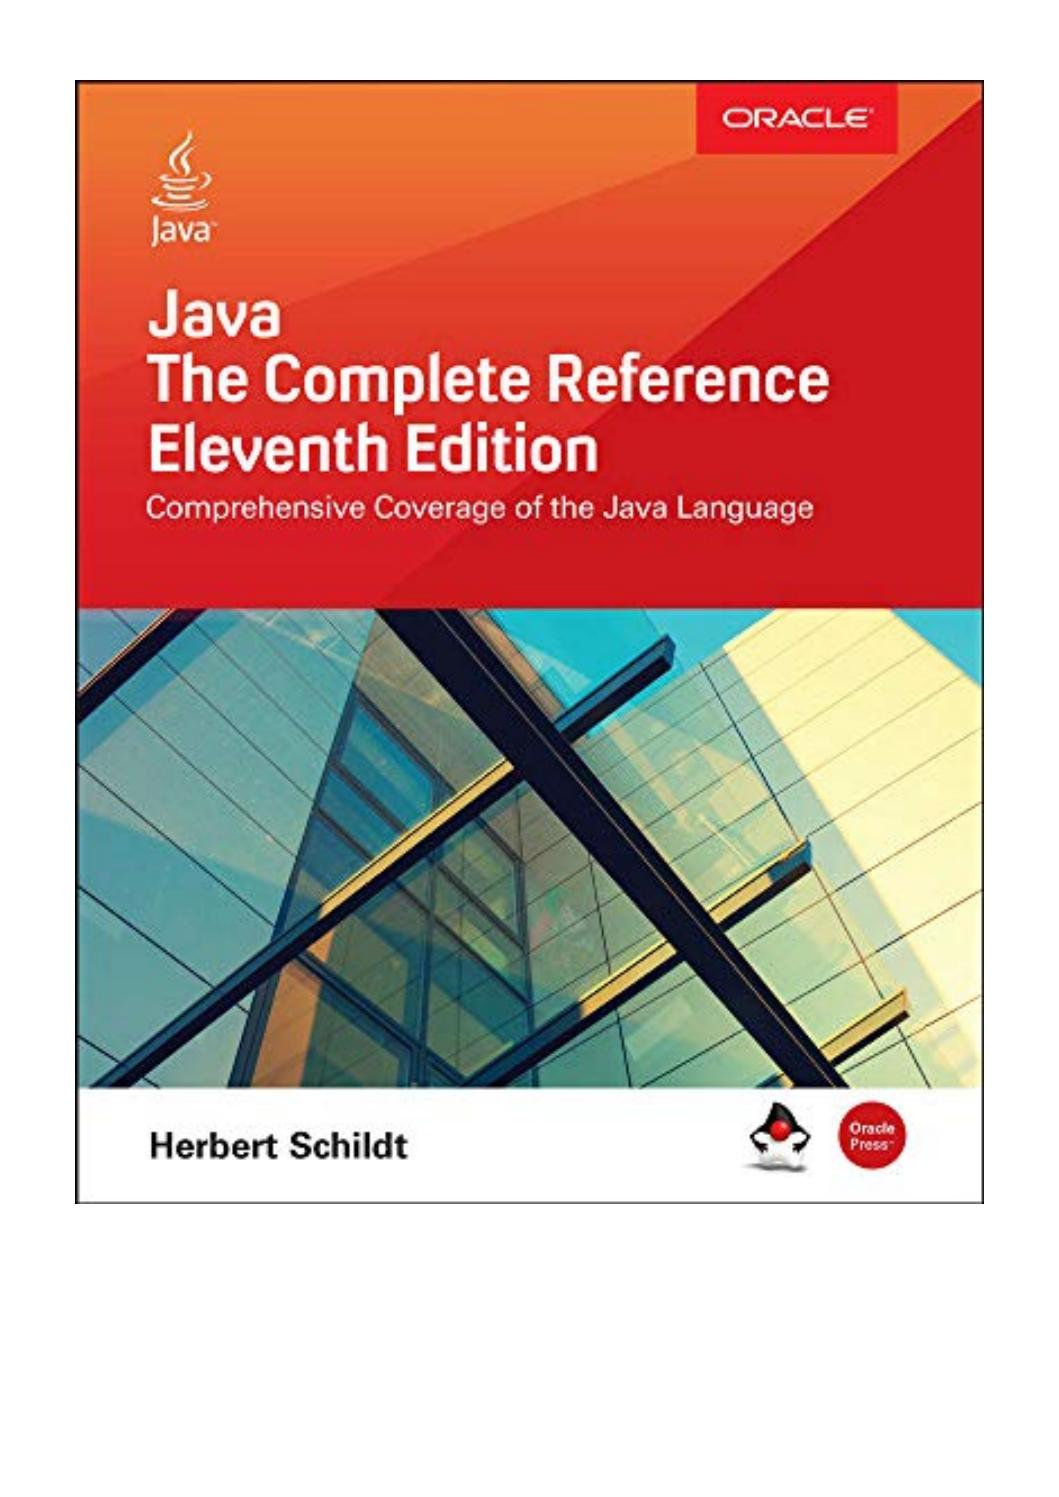 Java The Complete Reference Eleventh Edition Pdf